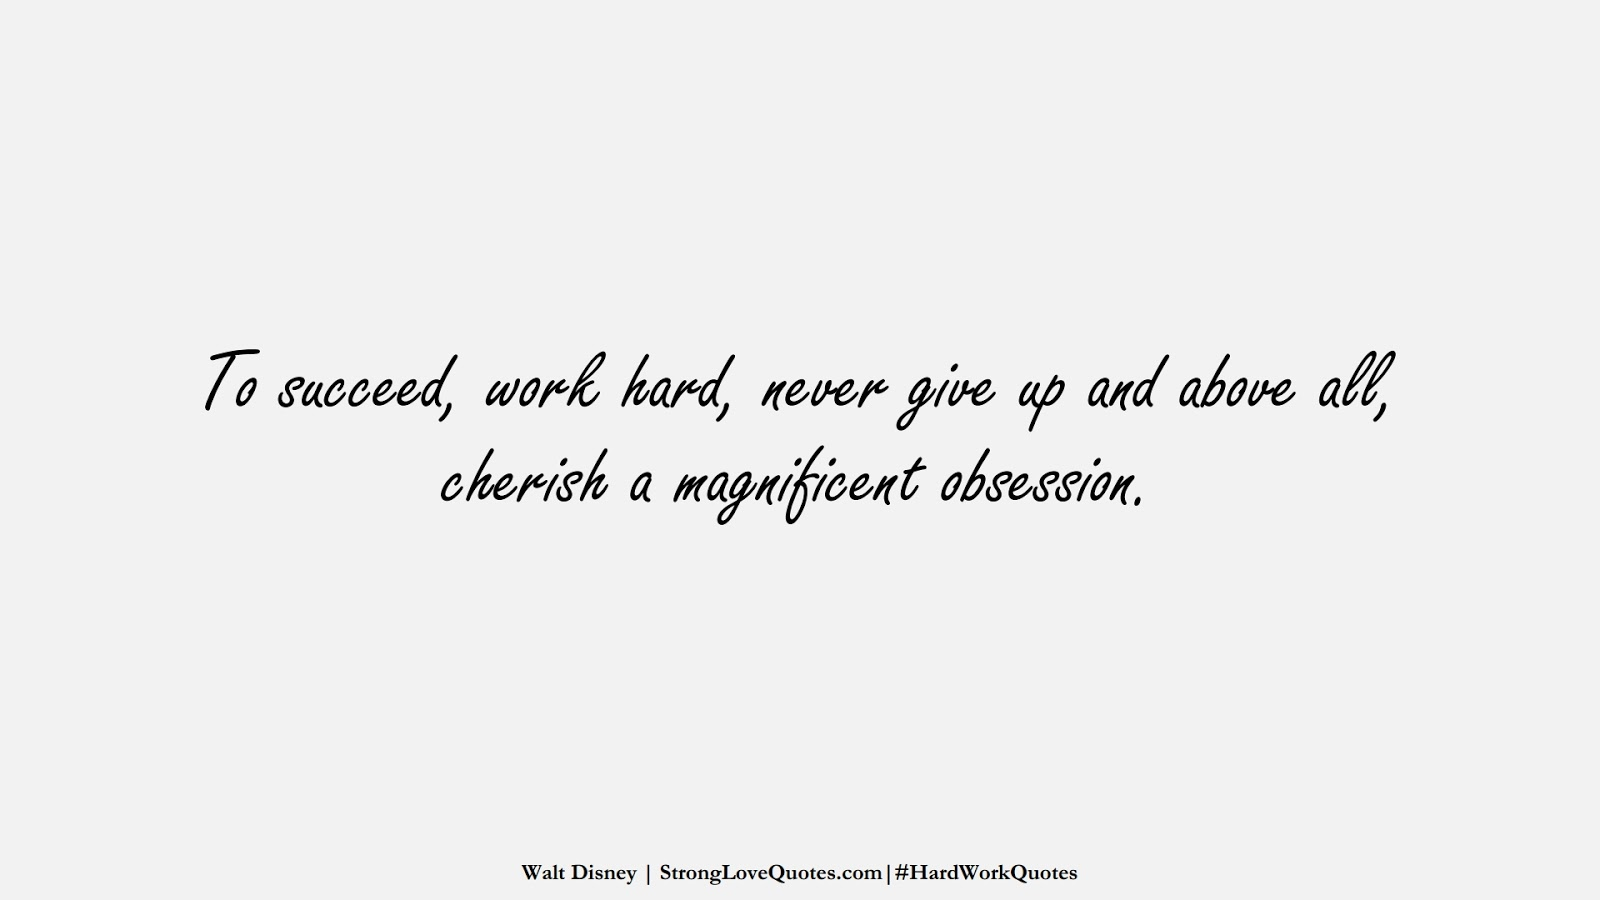 To succeed, work hard, never give up and above all, cherish a magnificent obsession. (Walt Disney);  #HardWorkQuotes